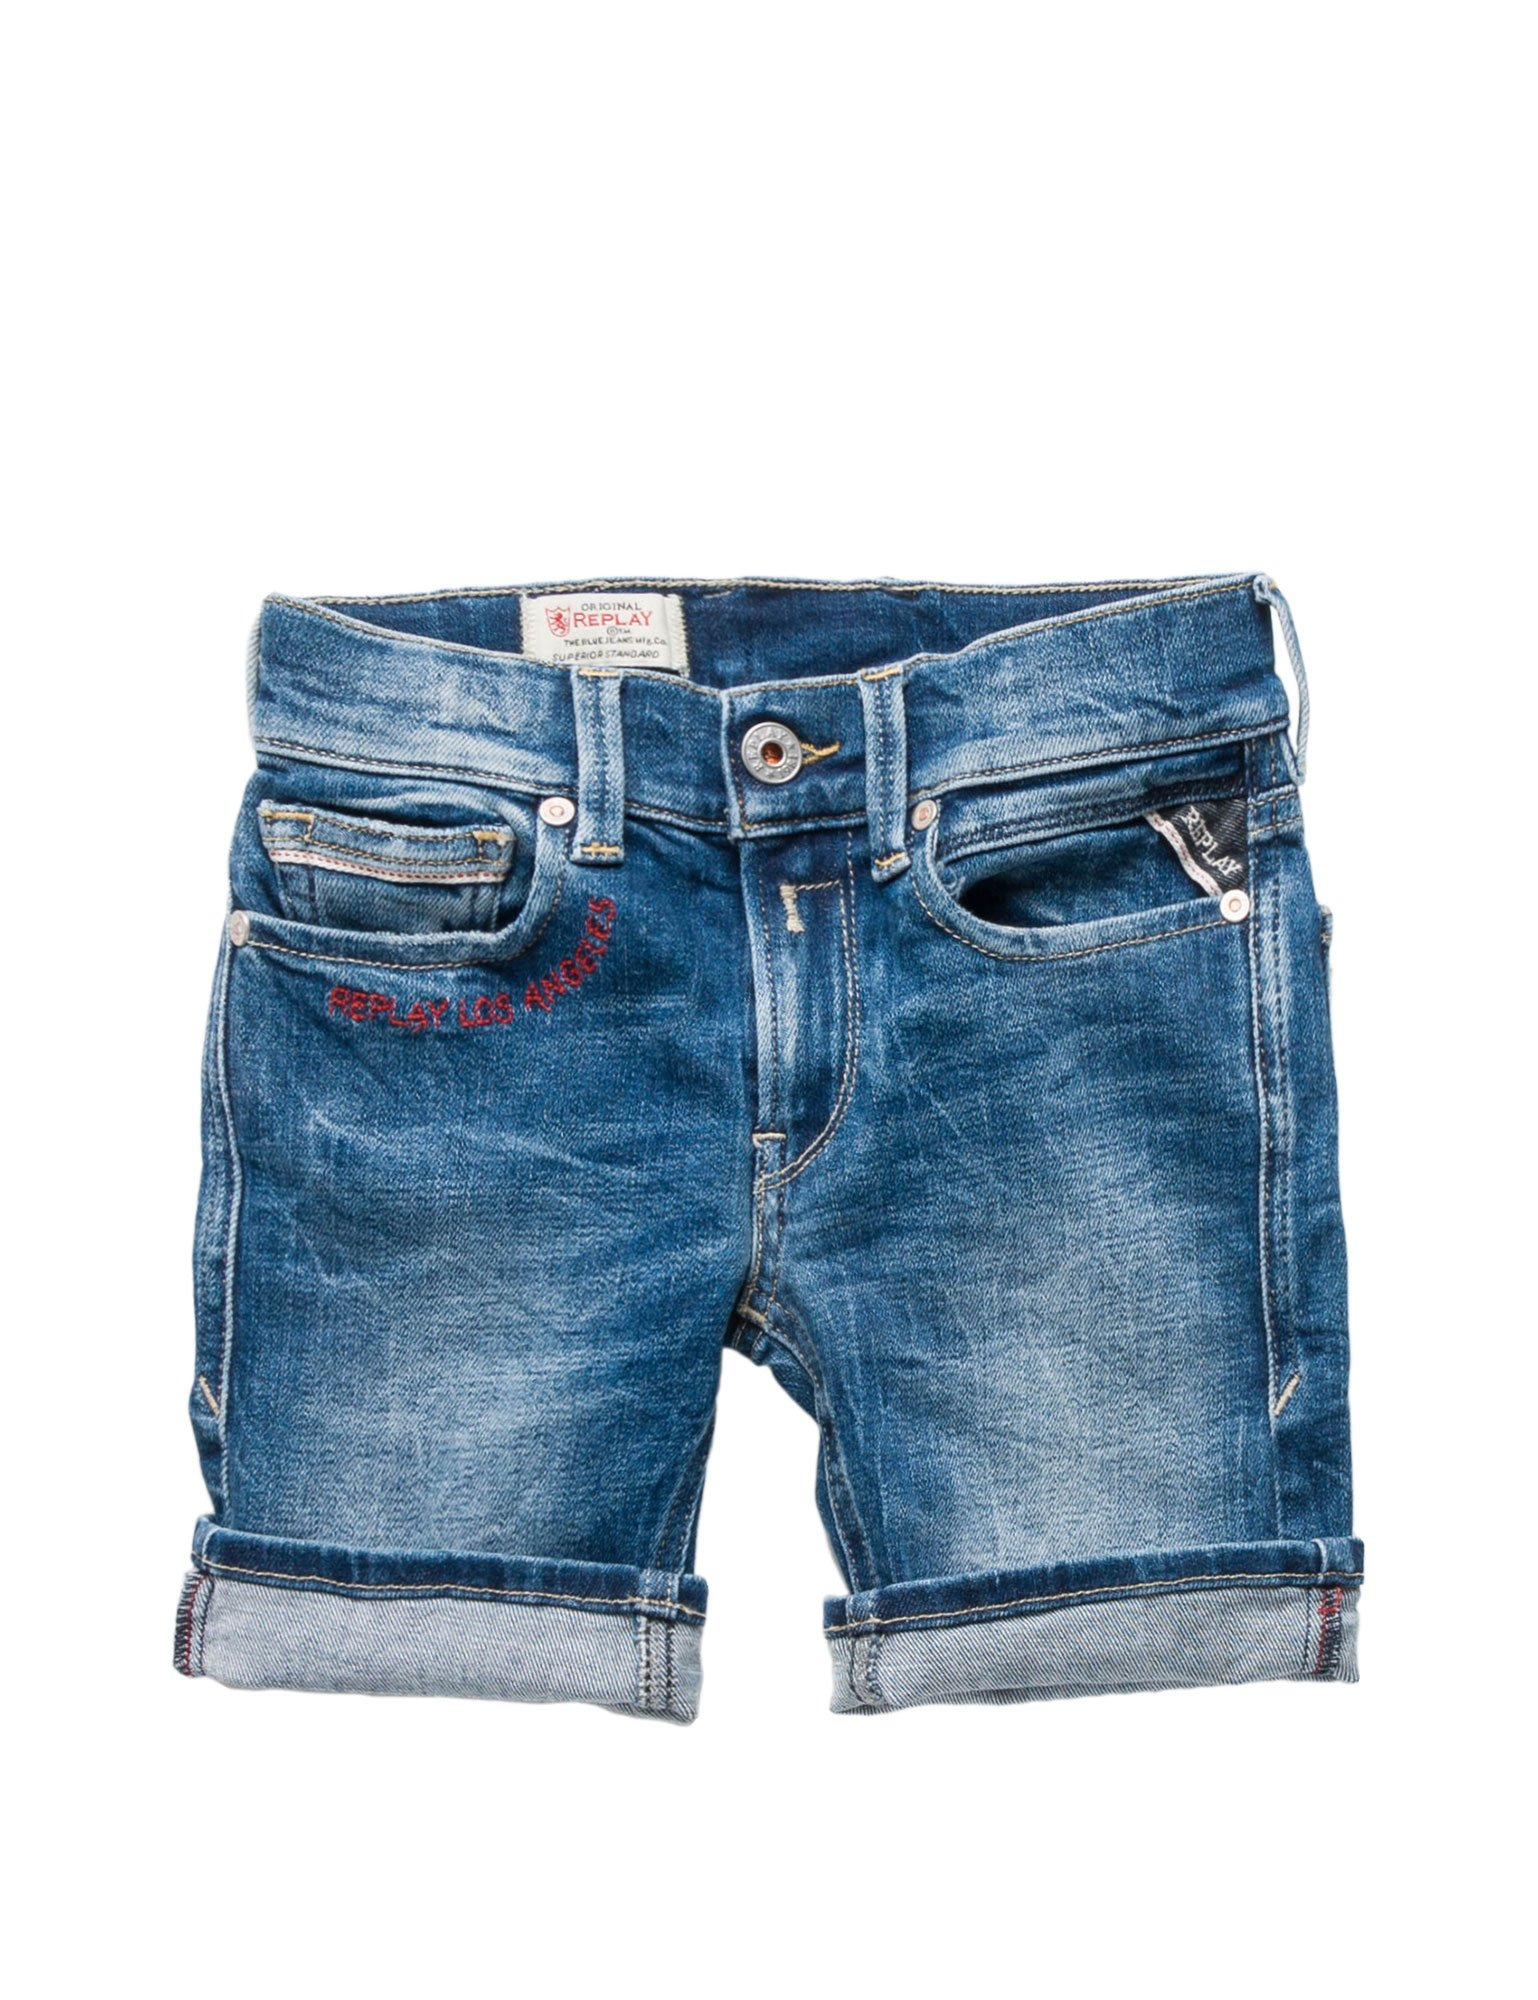 Replay Regular Fit Boy's Denim Shorts In Size 10 Years Blue